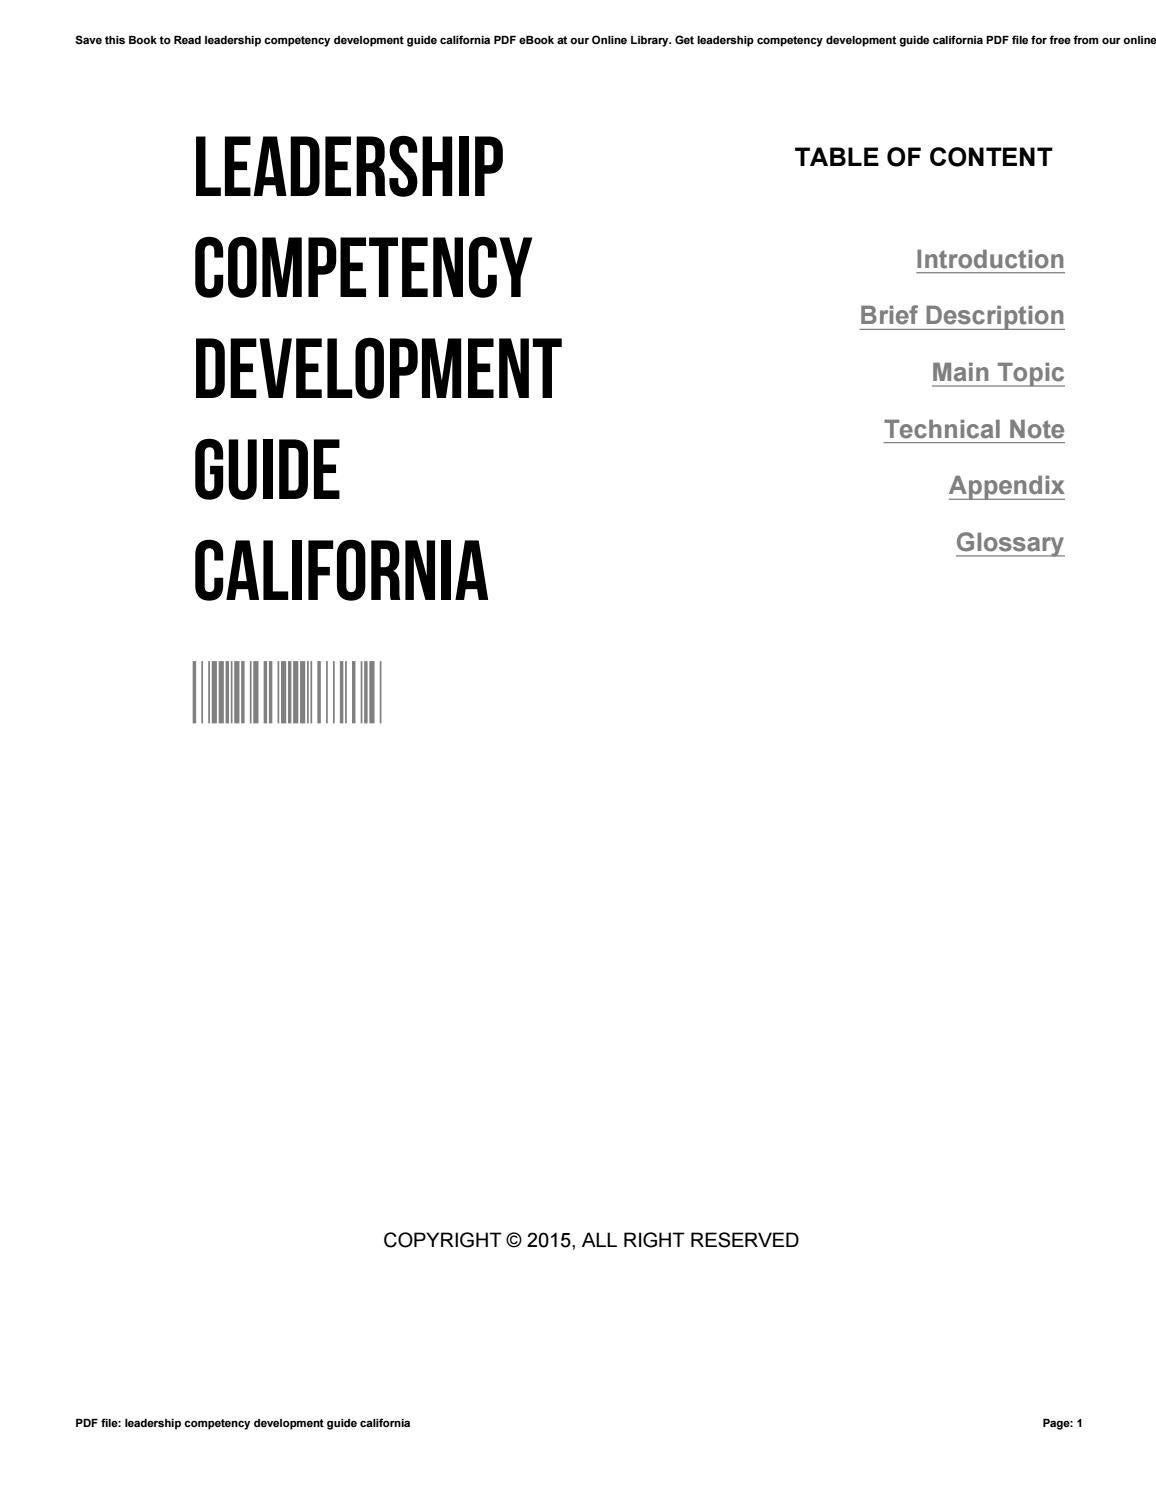 Leadership competency development guide california by ReneHellwig1859 -  issuu